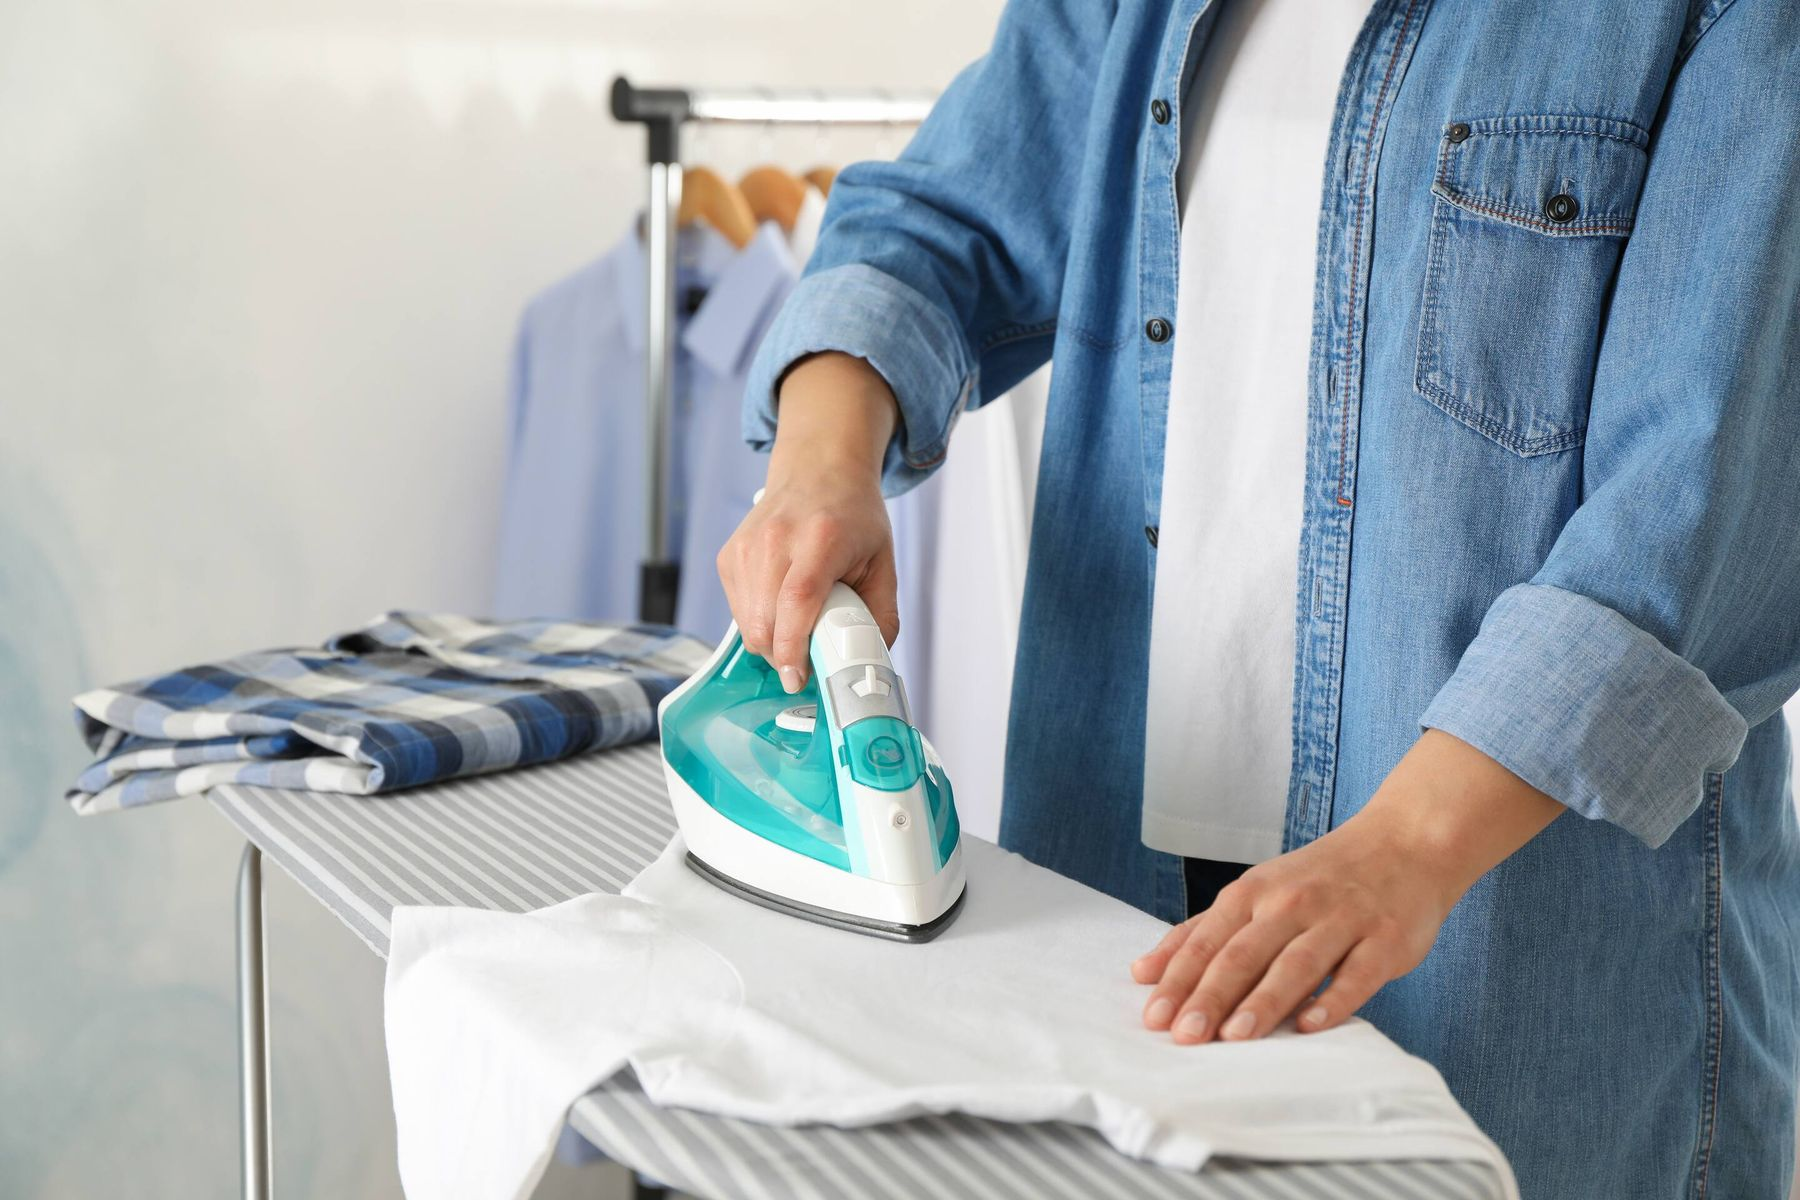 How to Clean an Ironing Board | Cleanipedia